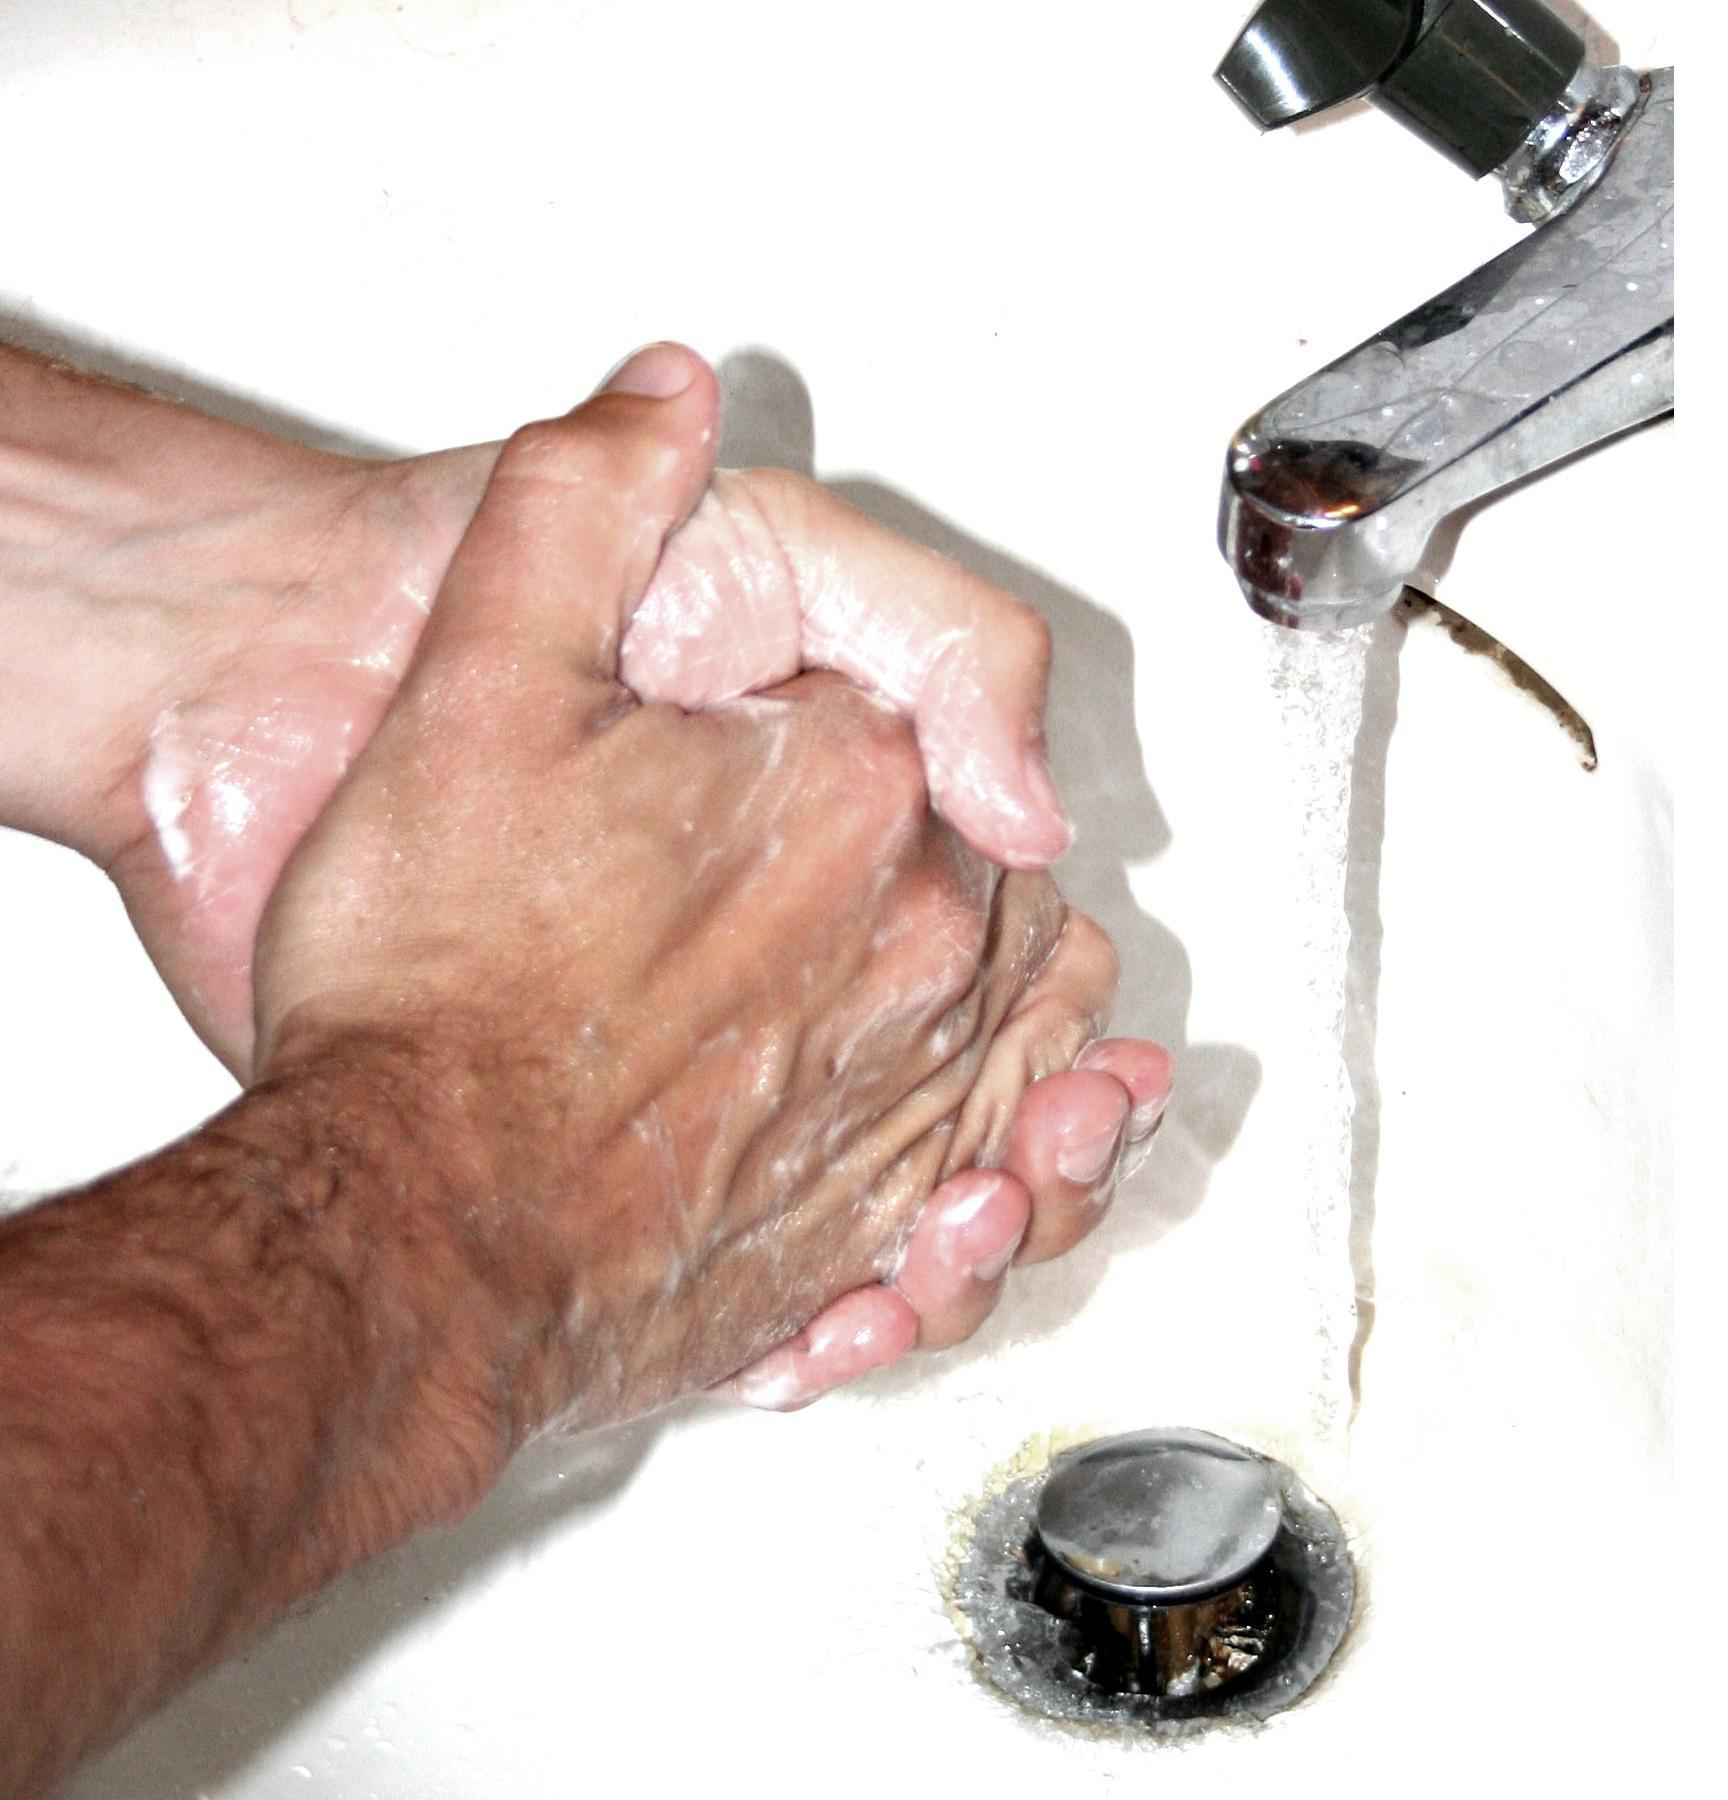 panic-attack-remedies-at-home-wash hands